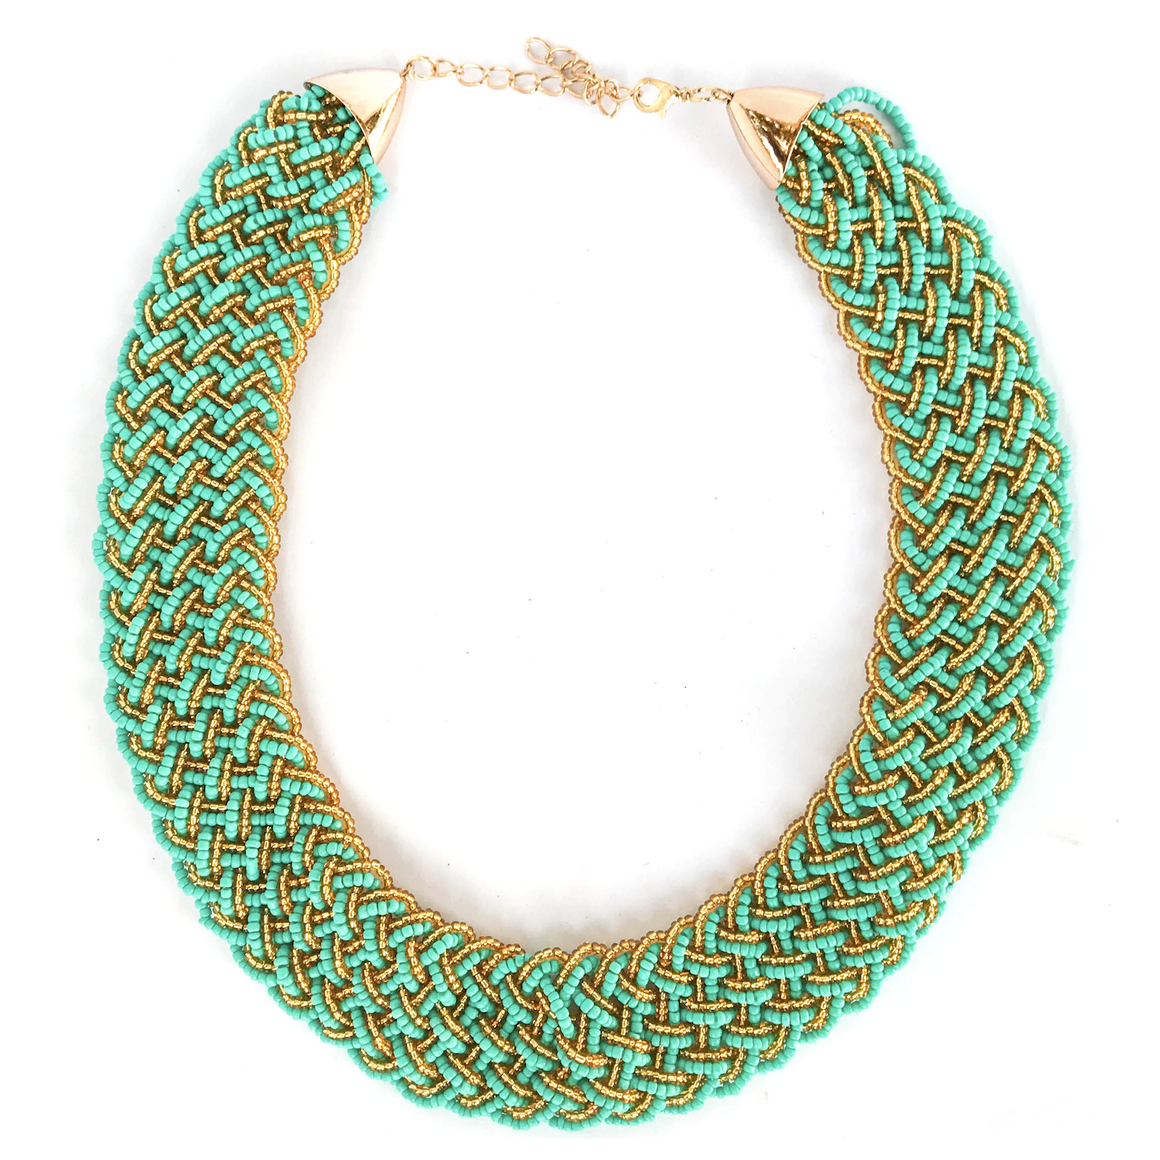 Turquoise Braided Necklace